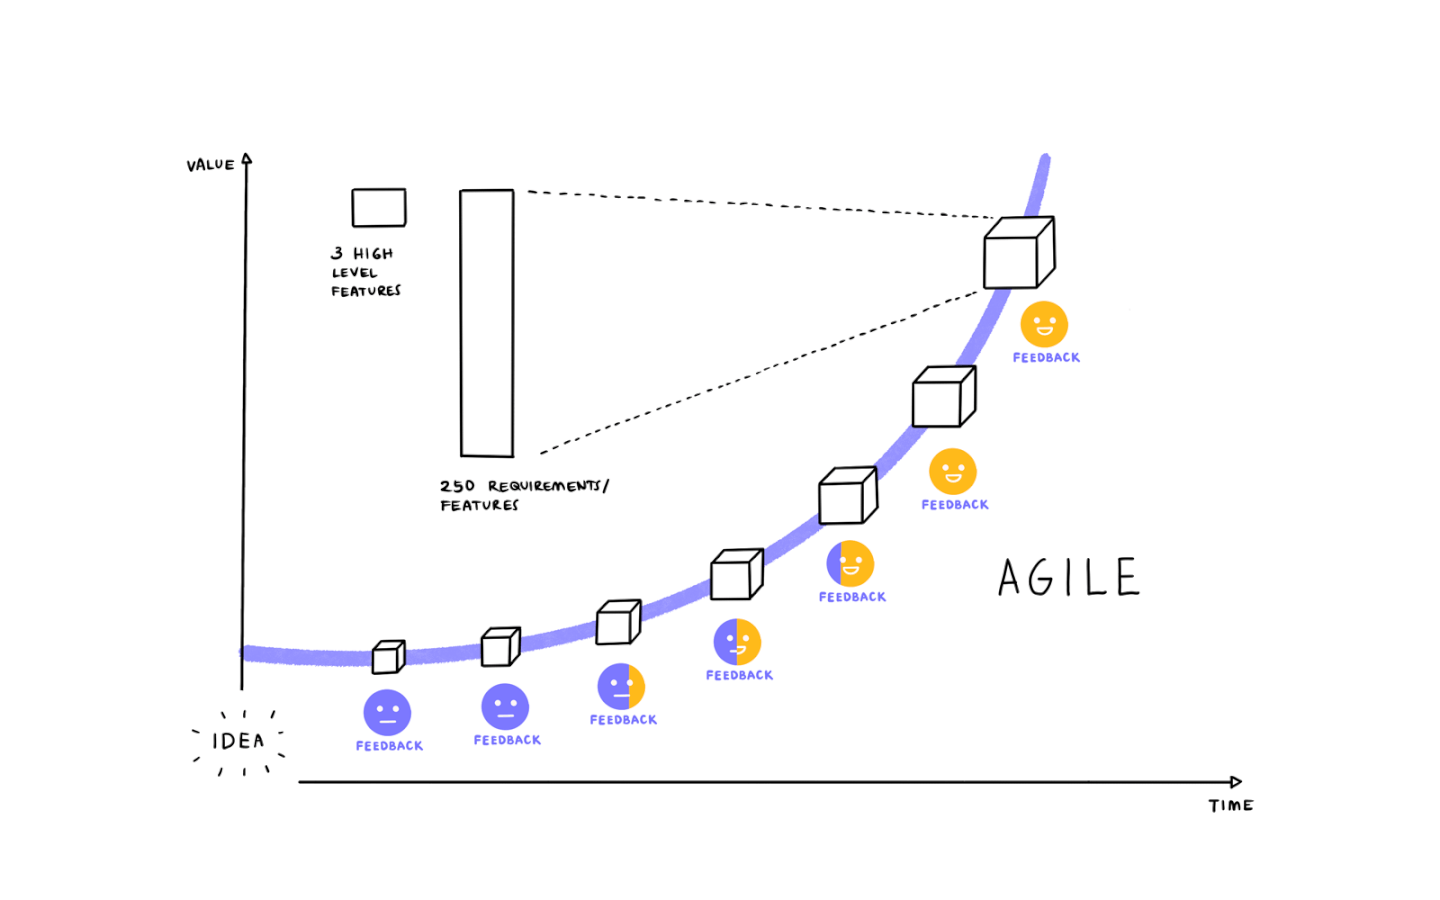 diagram showing agile with value vs time and overall satisfaction with requirements